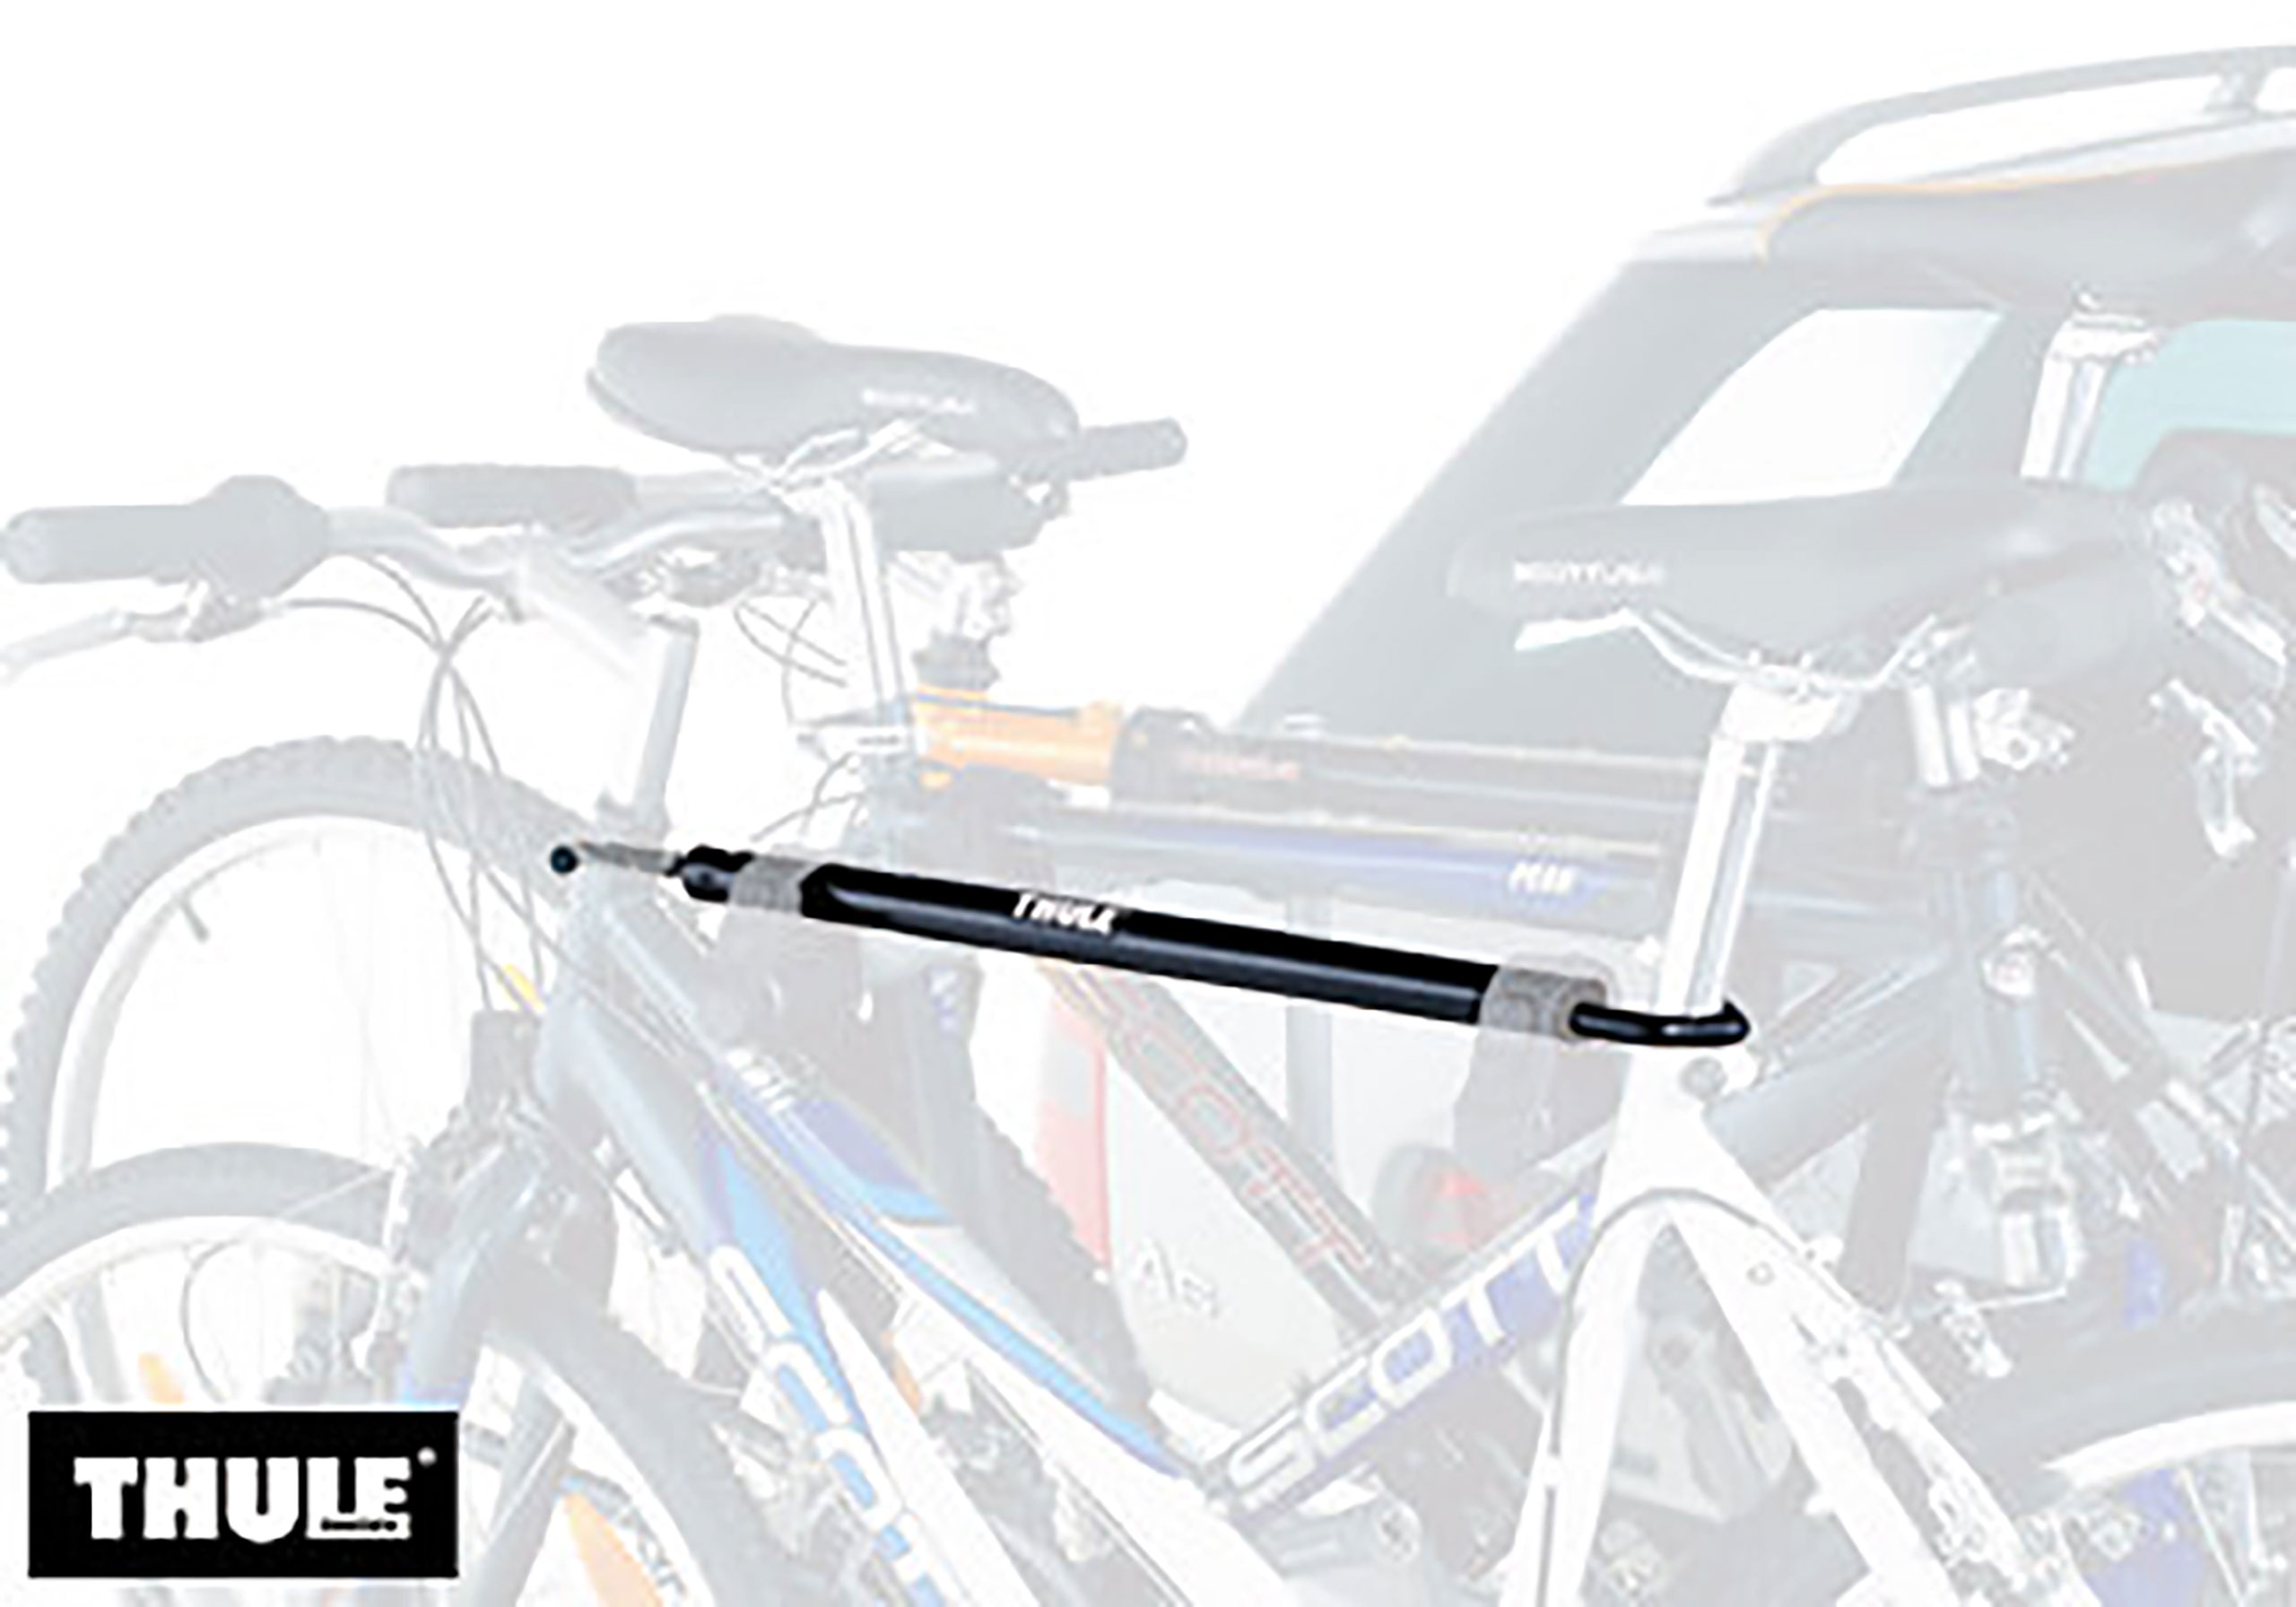 :Thule frame adapter (artificial cross-bar) no. 982